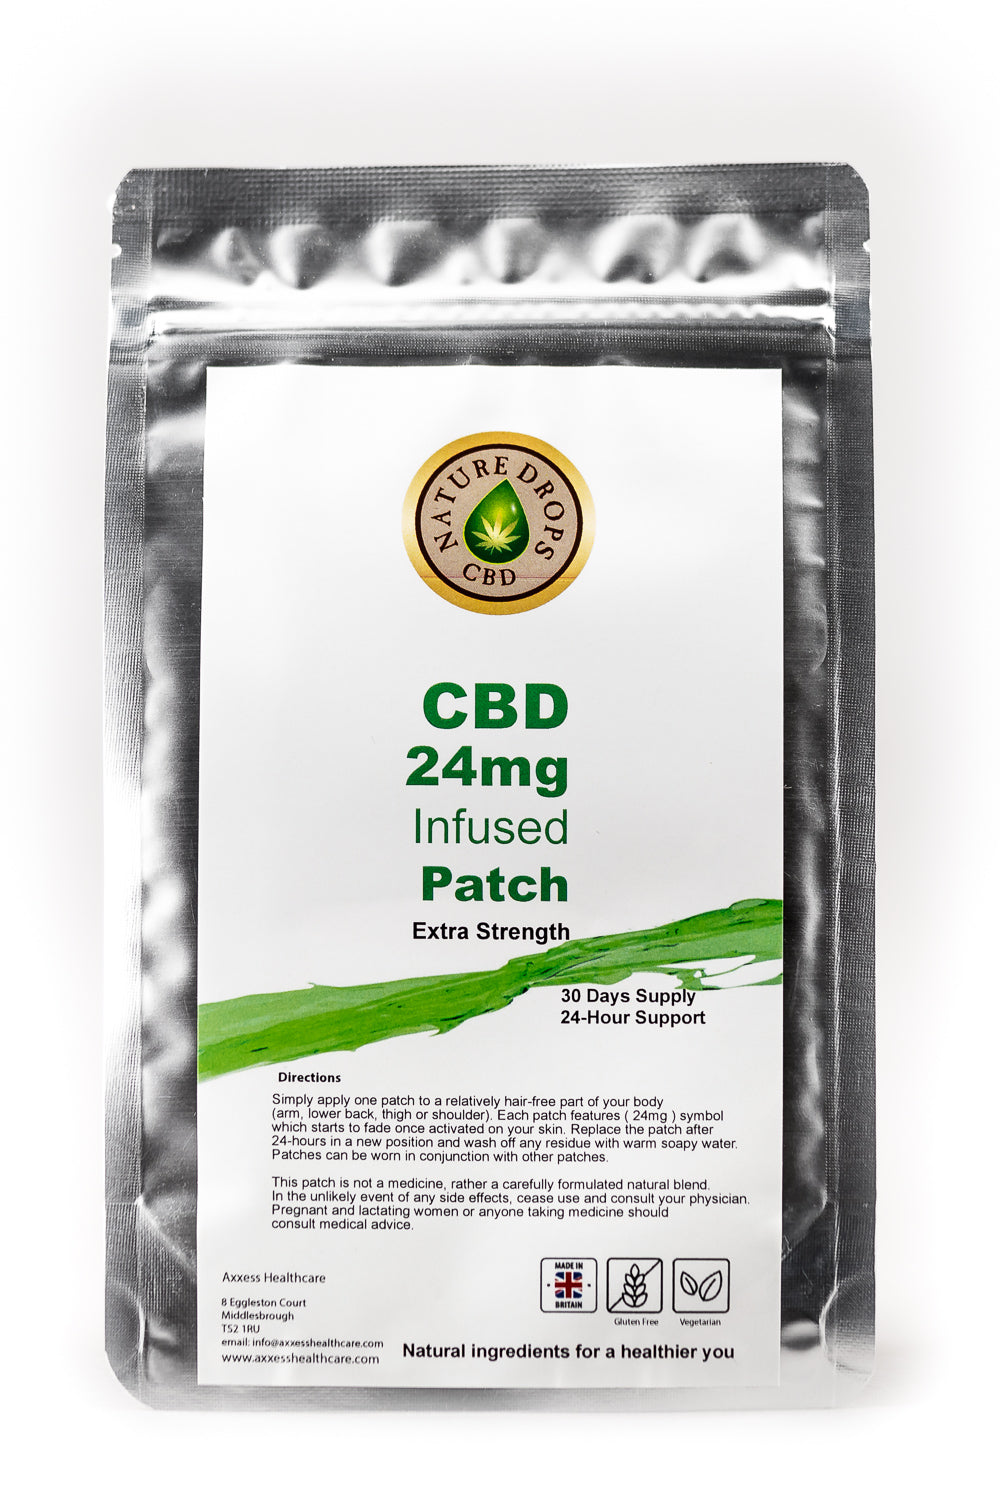 CBD PATCH 24mg - Extra Strength, Vitamins & Supplements - Image 1